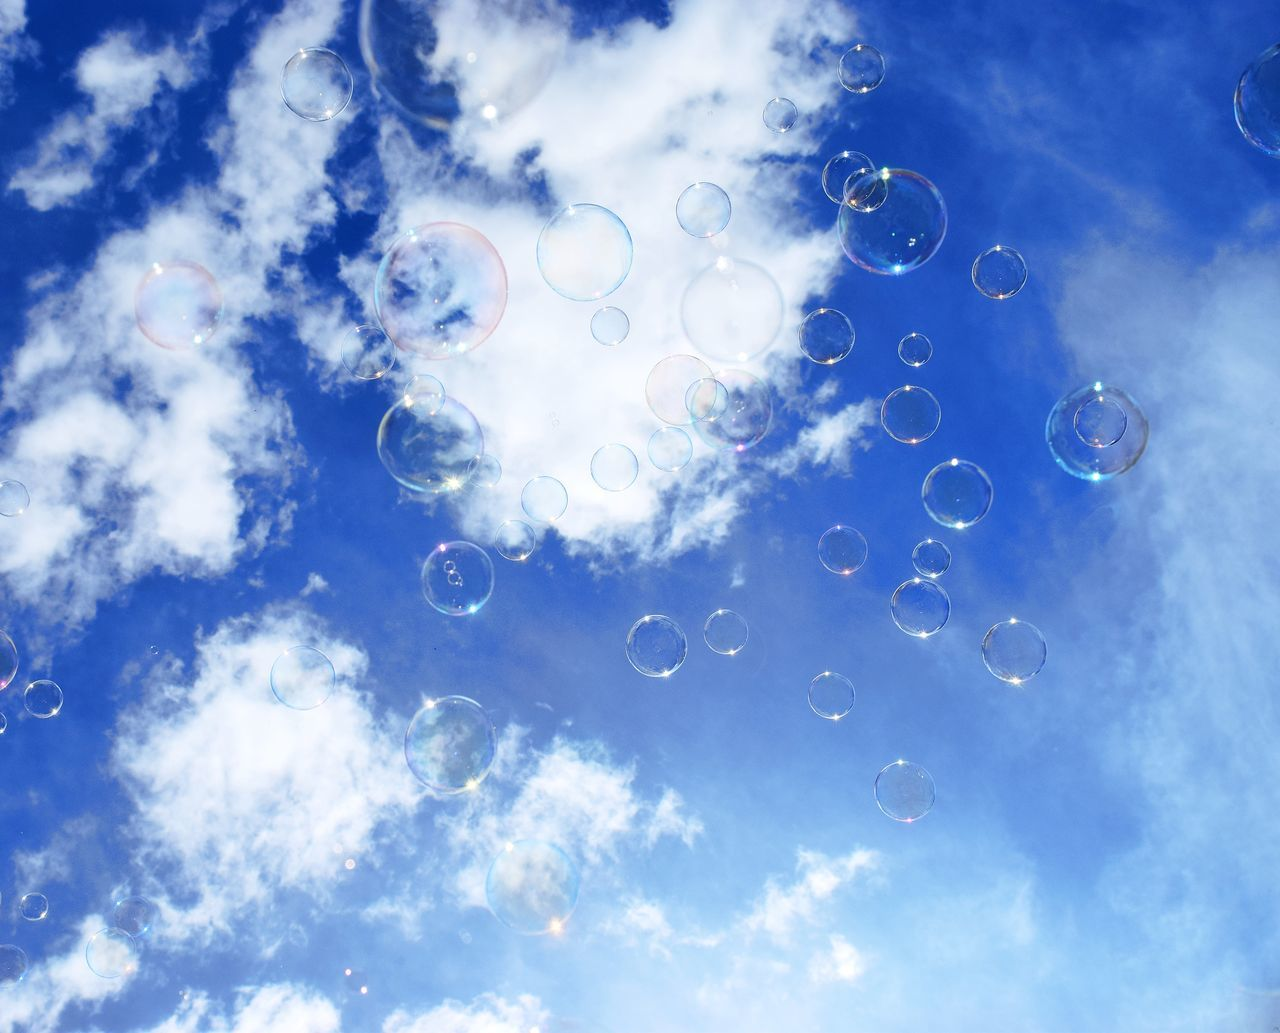 Bubbles in the sky Backgrounds Blue Bubble Bubble Wand Cloud - Sky Colorful Day Dream Dreaming Freedom Fun Funny Happiness Happy Nature No People Outdoors Sky Summer Wind